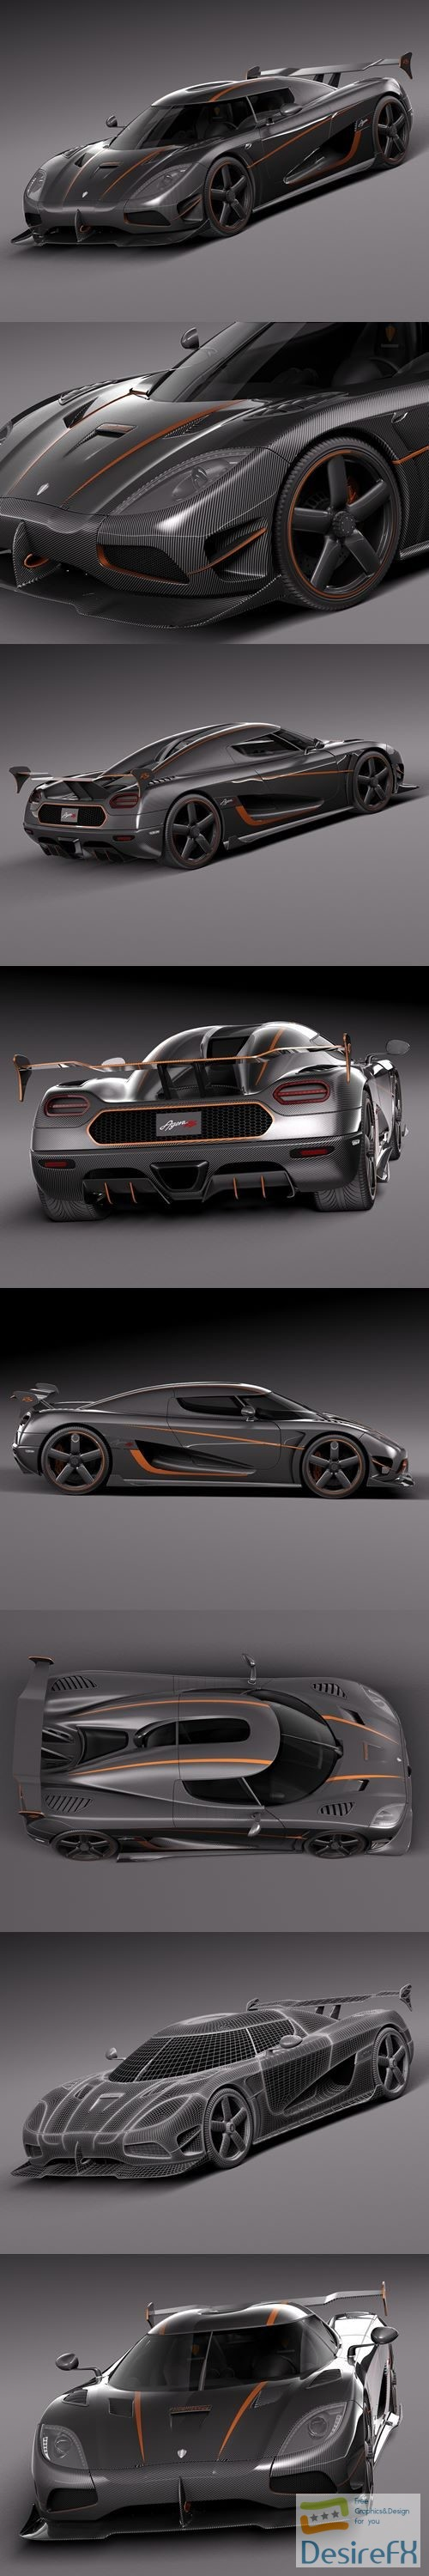 3d-models - Koenigsegg Agera RS 2015 3D Model